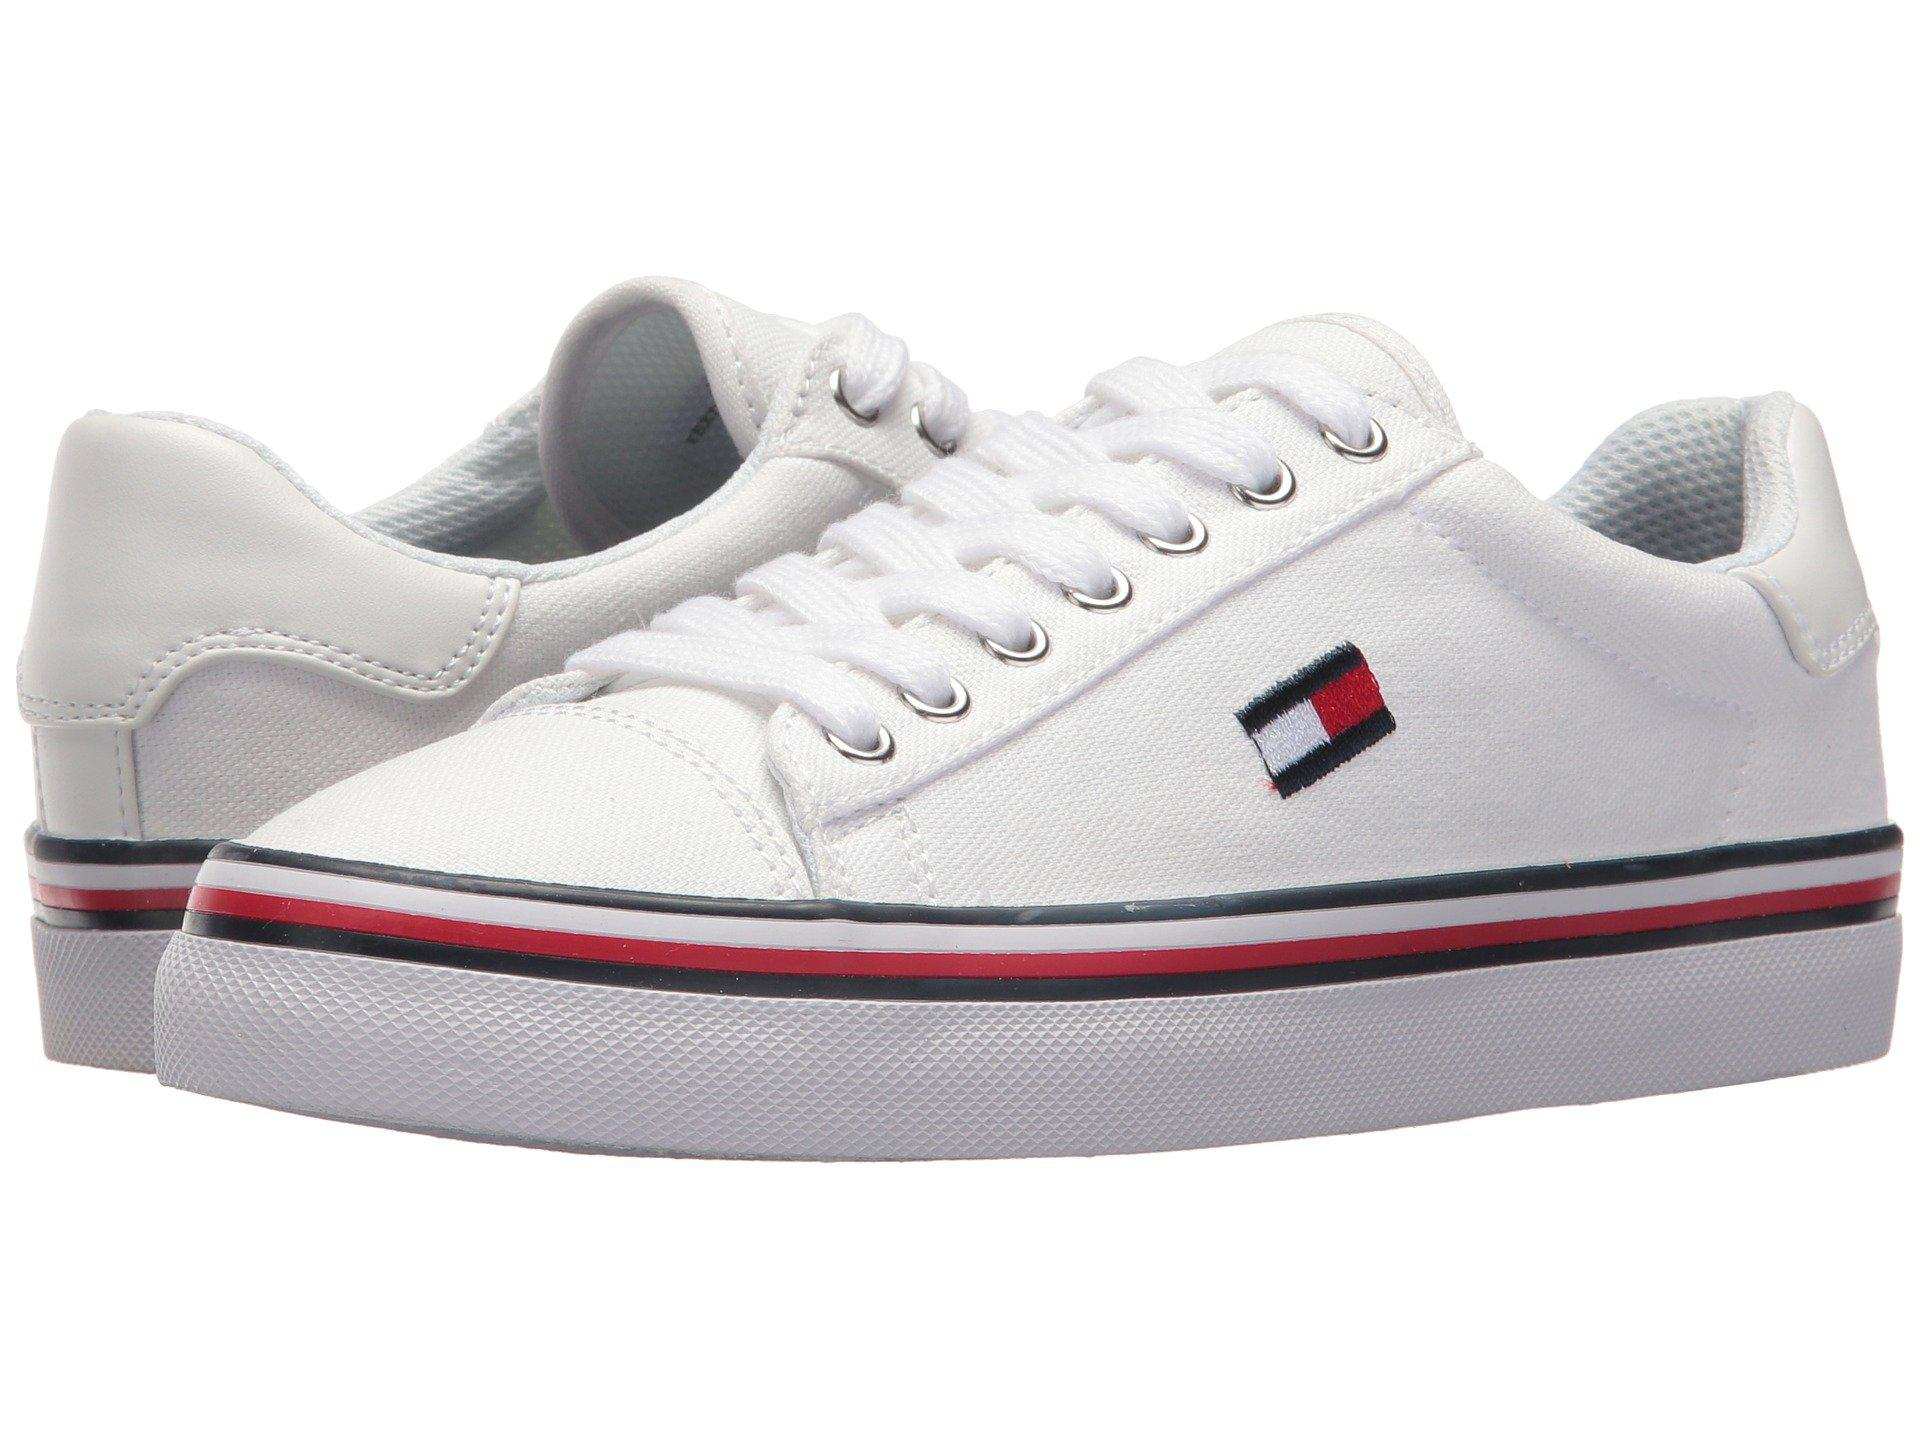 f2e6c4757 Lyst - Tommy Hilfiger Fressian in White - Save 8%